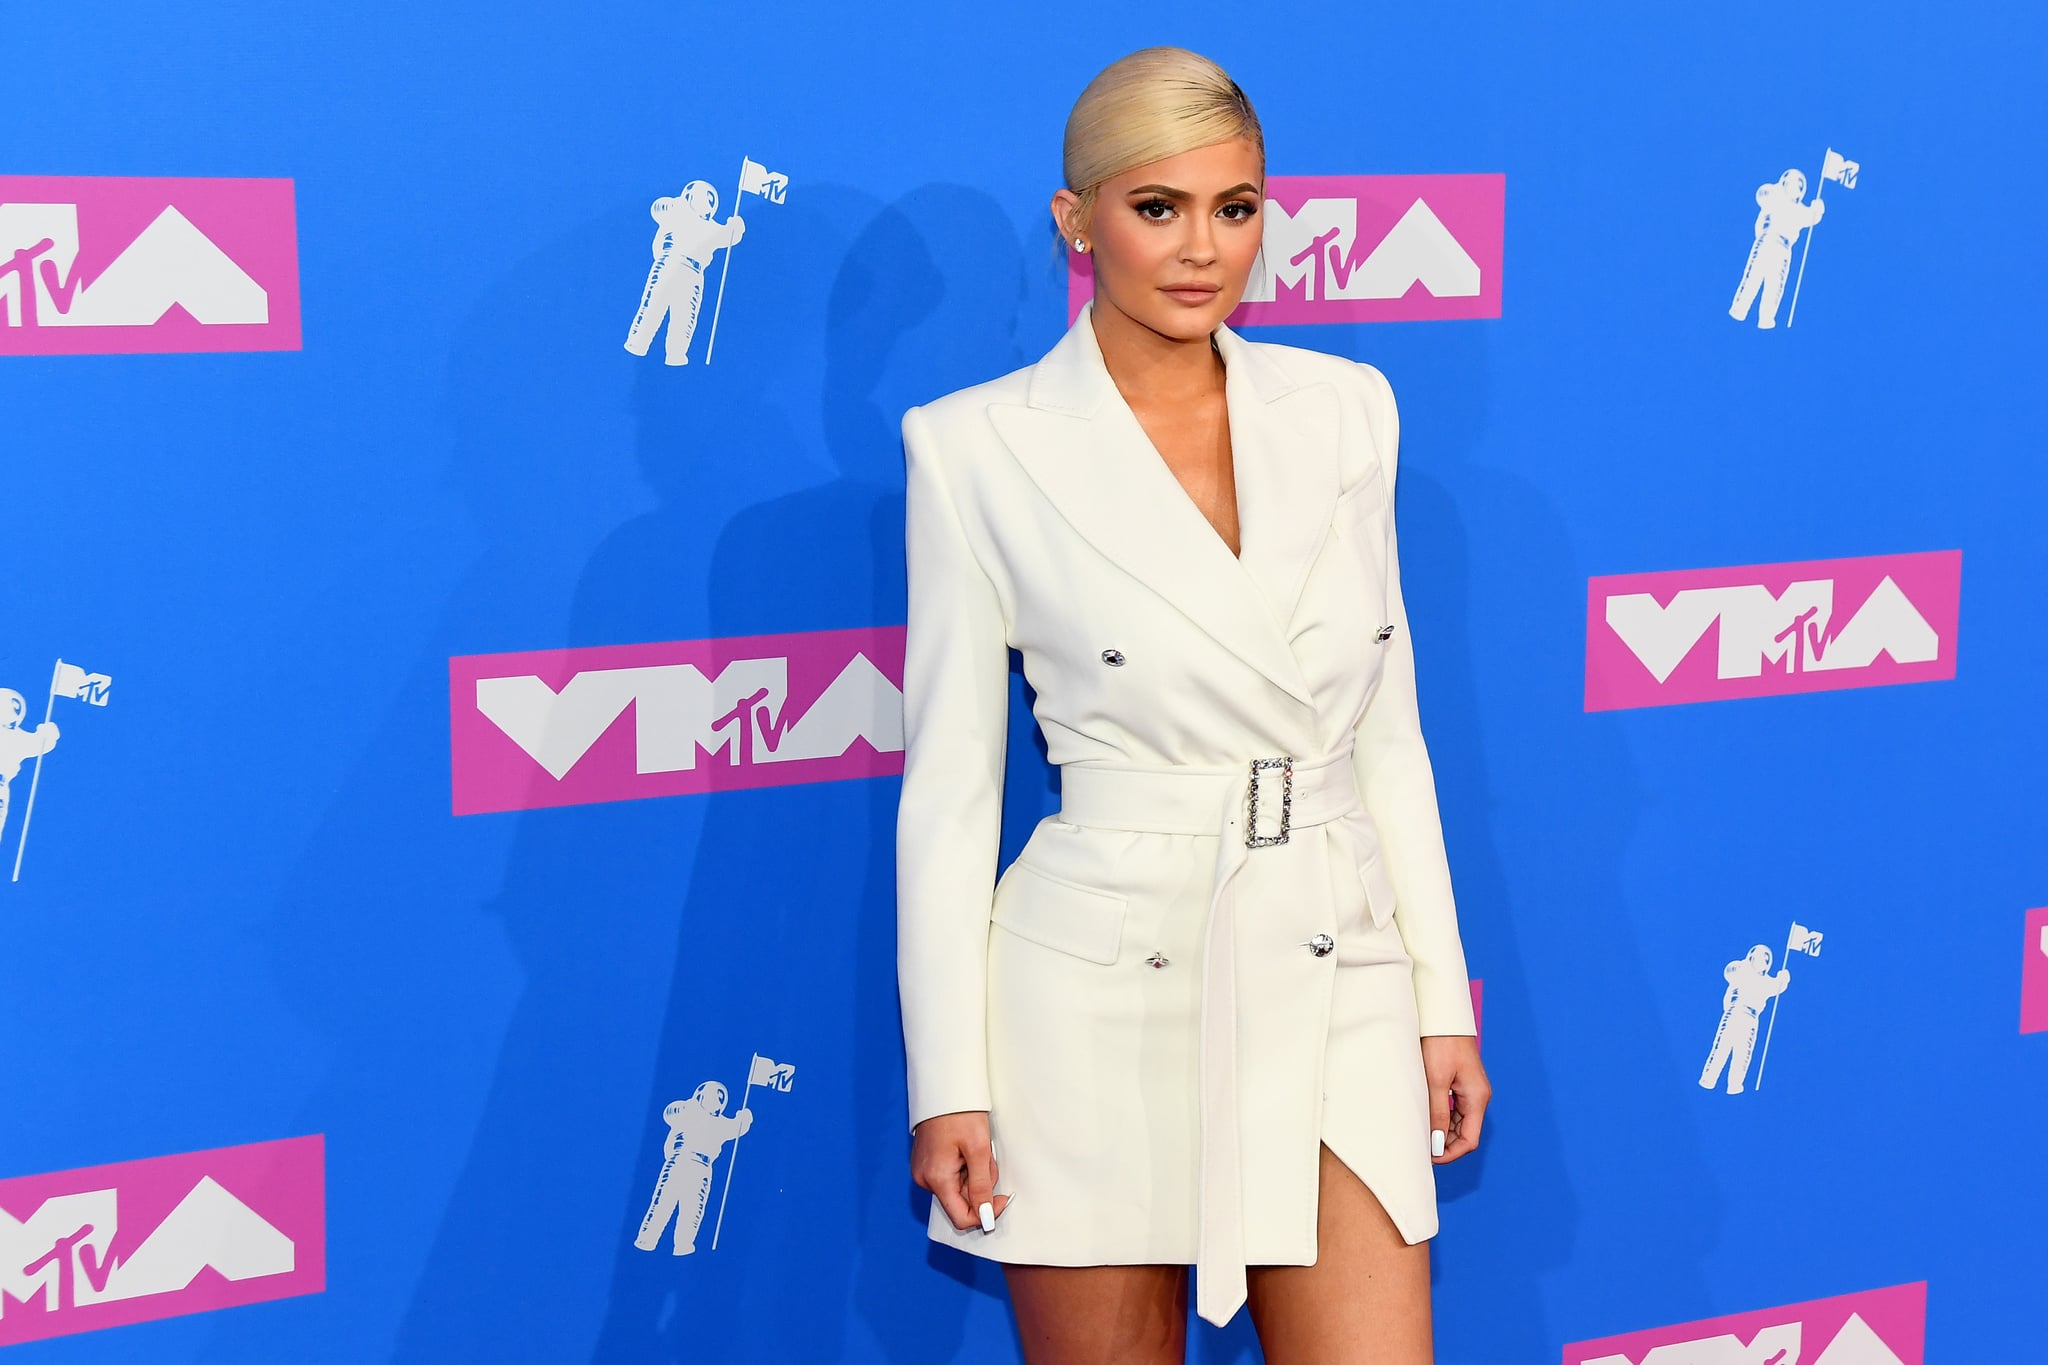 NEW YORK, NY - AUGUST 20:  Kylie Jenner attends the 2018 MTV Video Music Awards at Radio City Music Hall on August 20, 2018 in New York City.  (Photo by Nicholas Hunt/Getty Images for MTV)